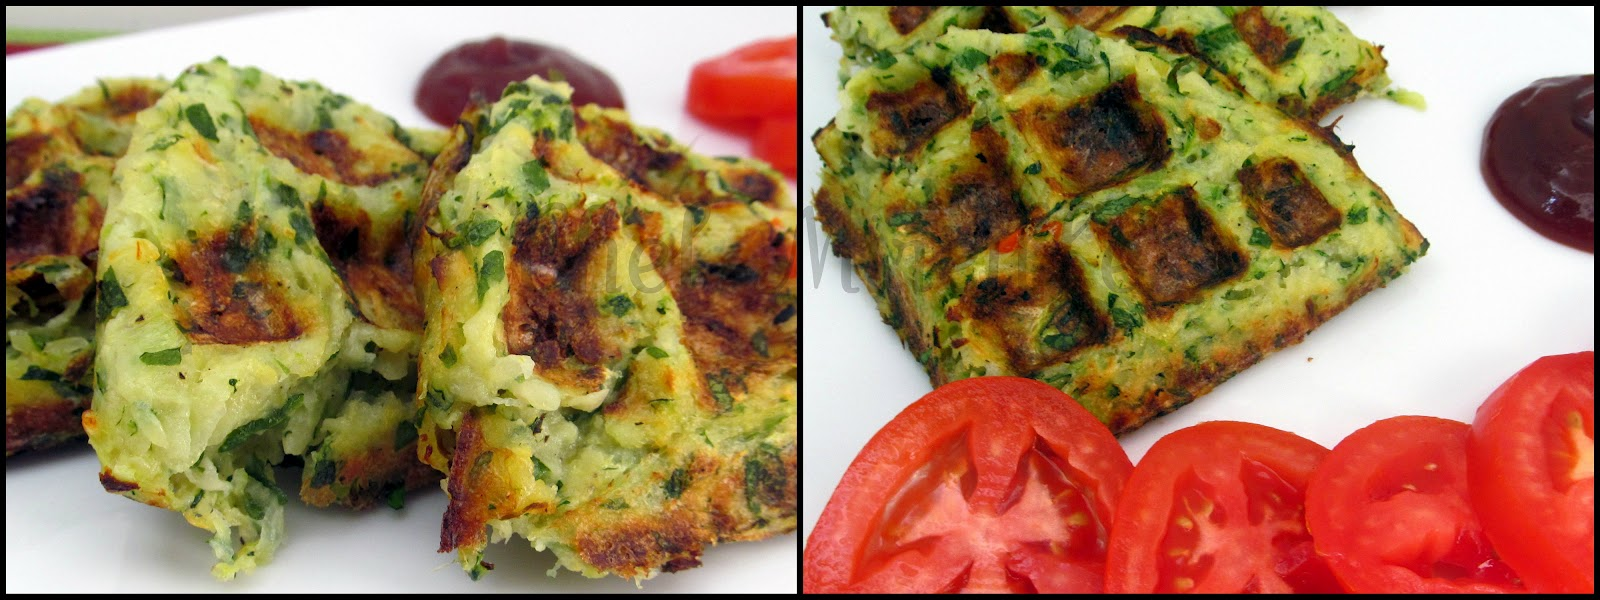 Chef Mireille's Global Creations: Zucchini-Potato Hash Brown Waffles